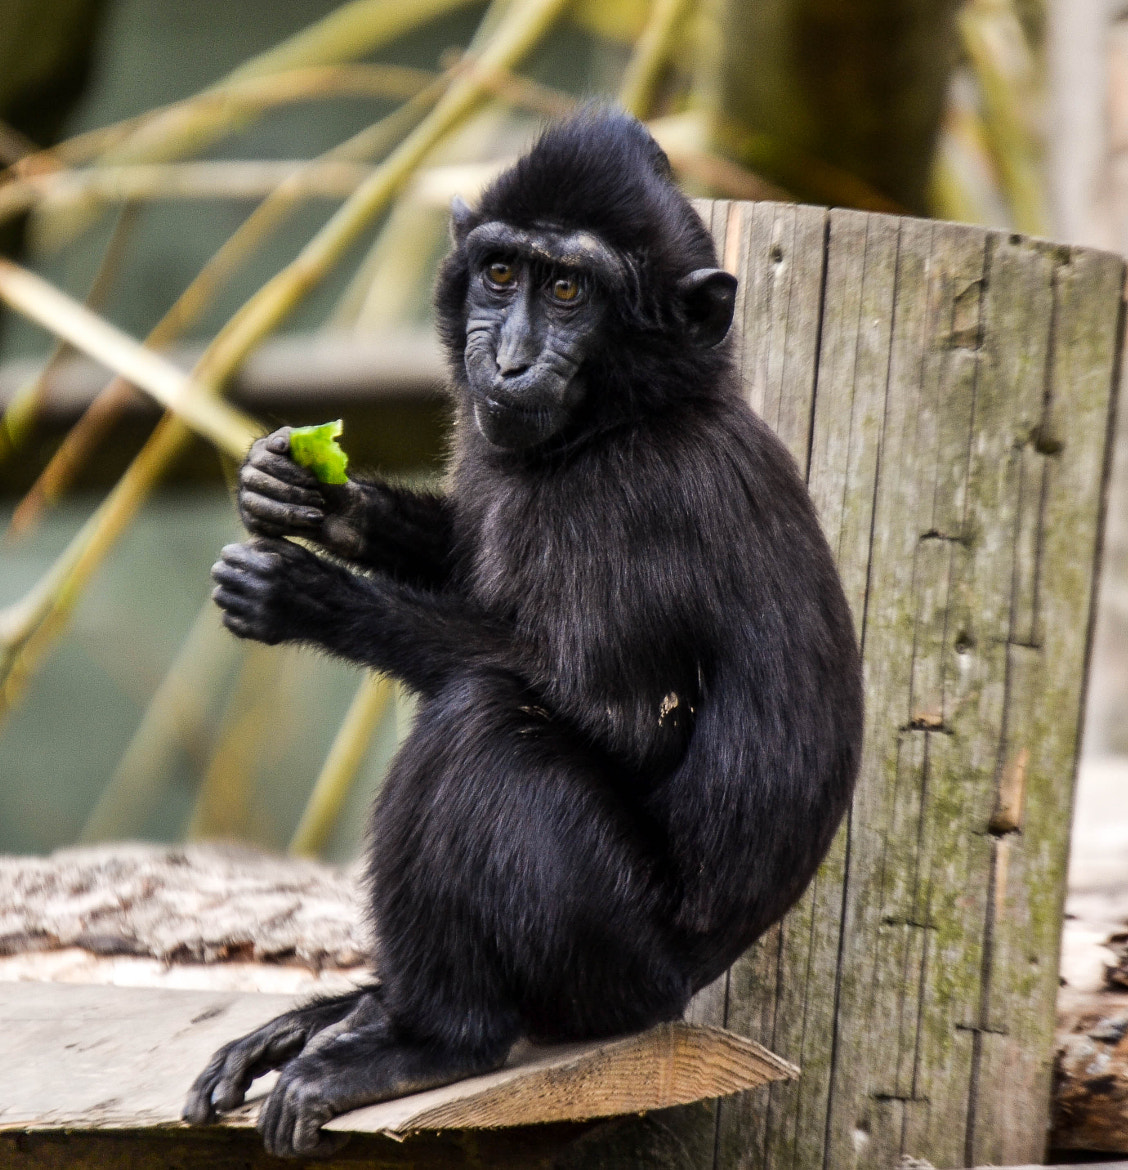 Photograph monkey by Rachel Browning on 500px